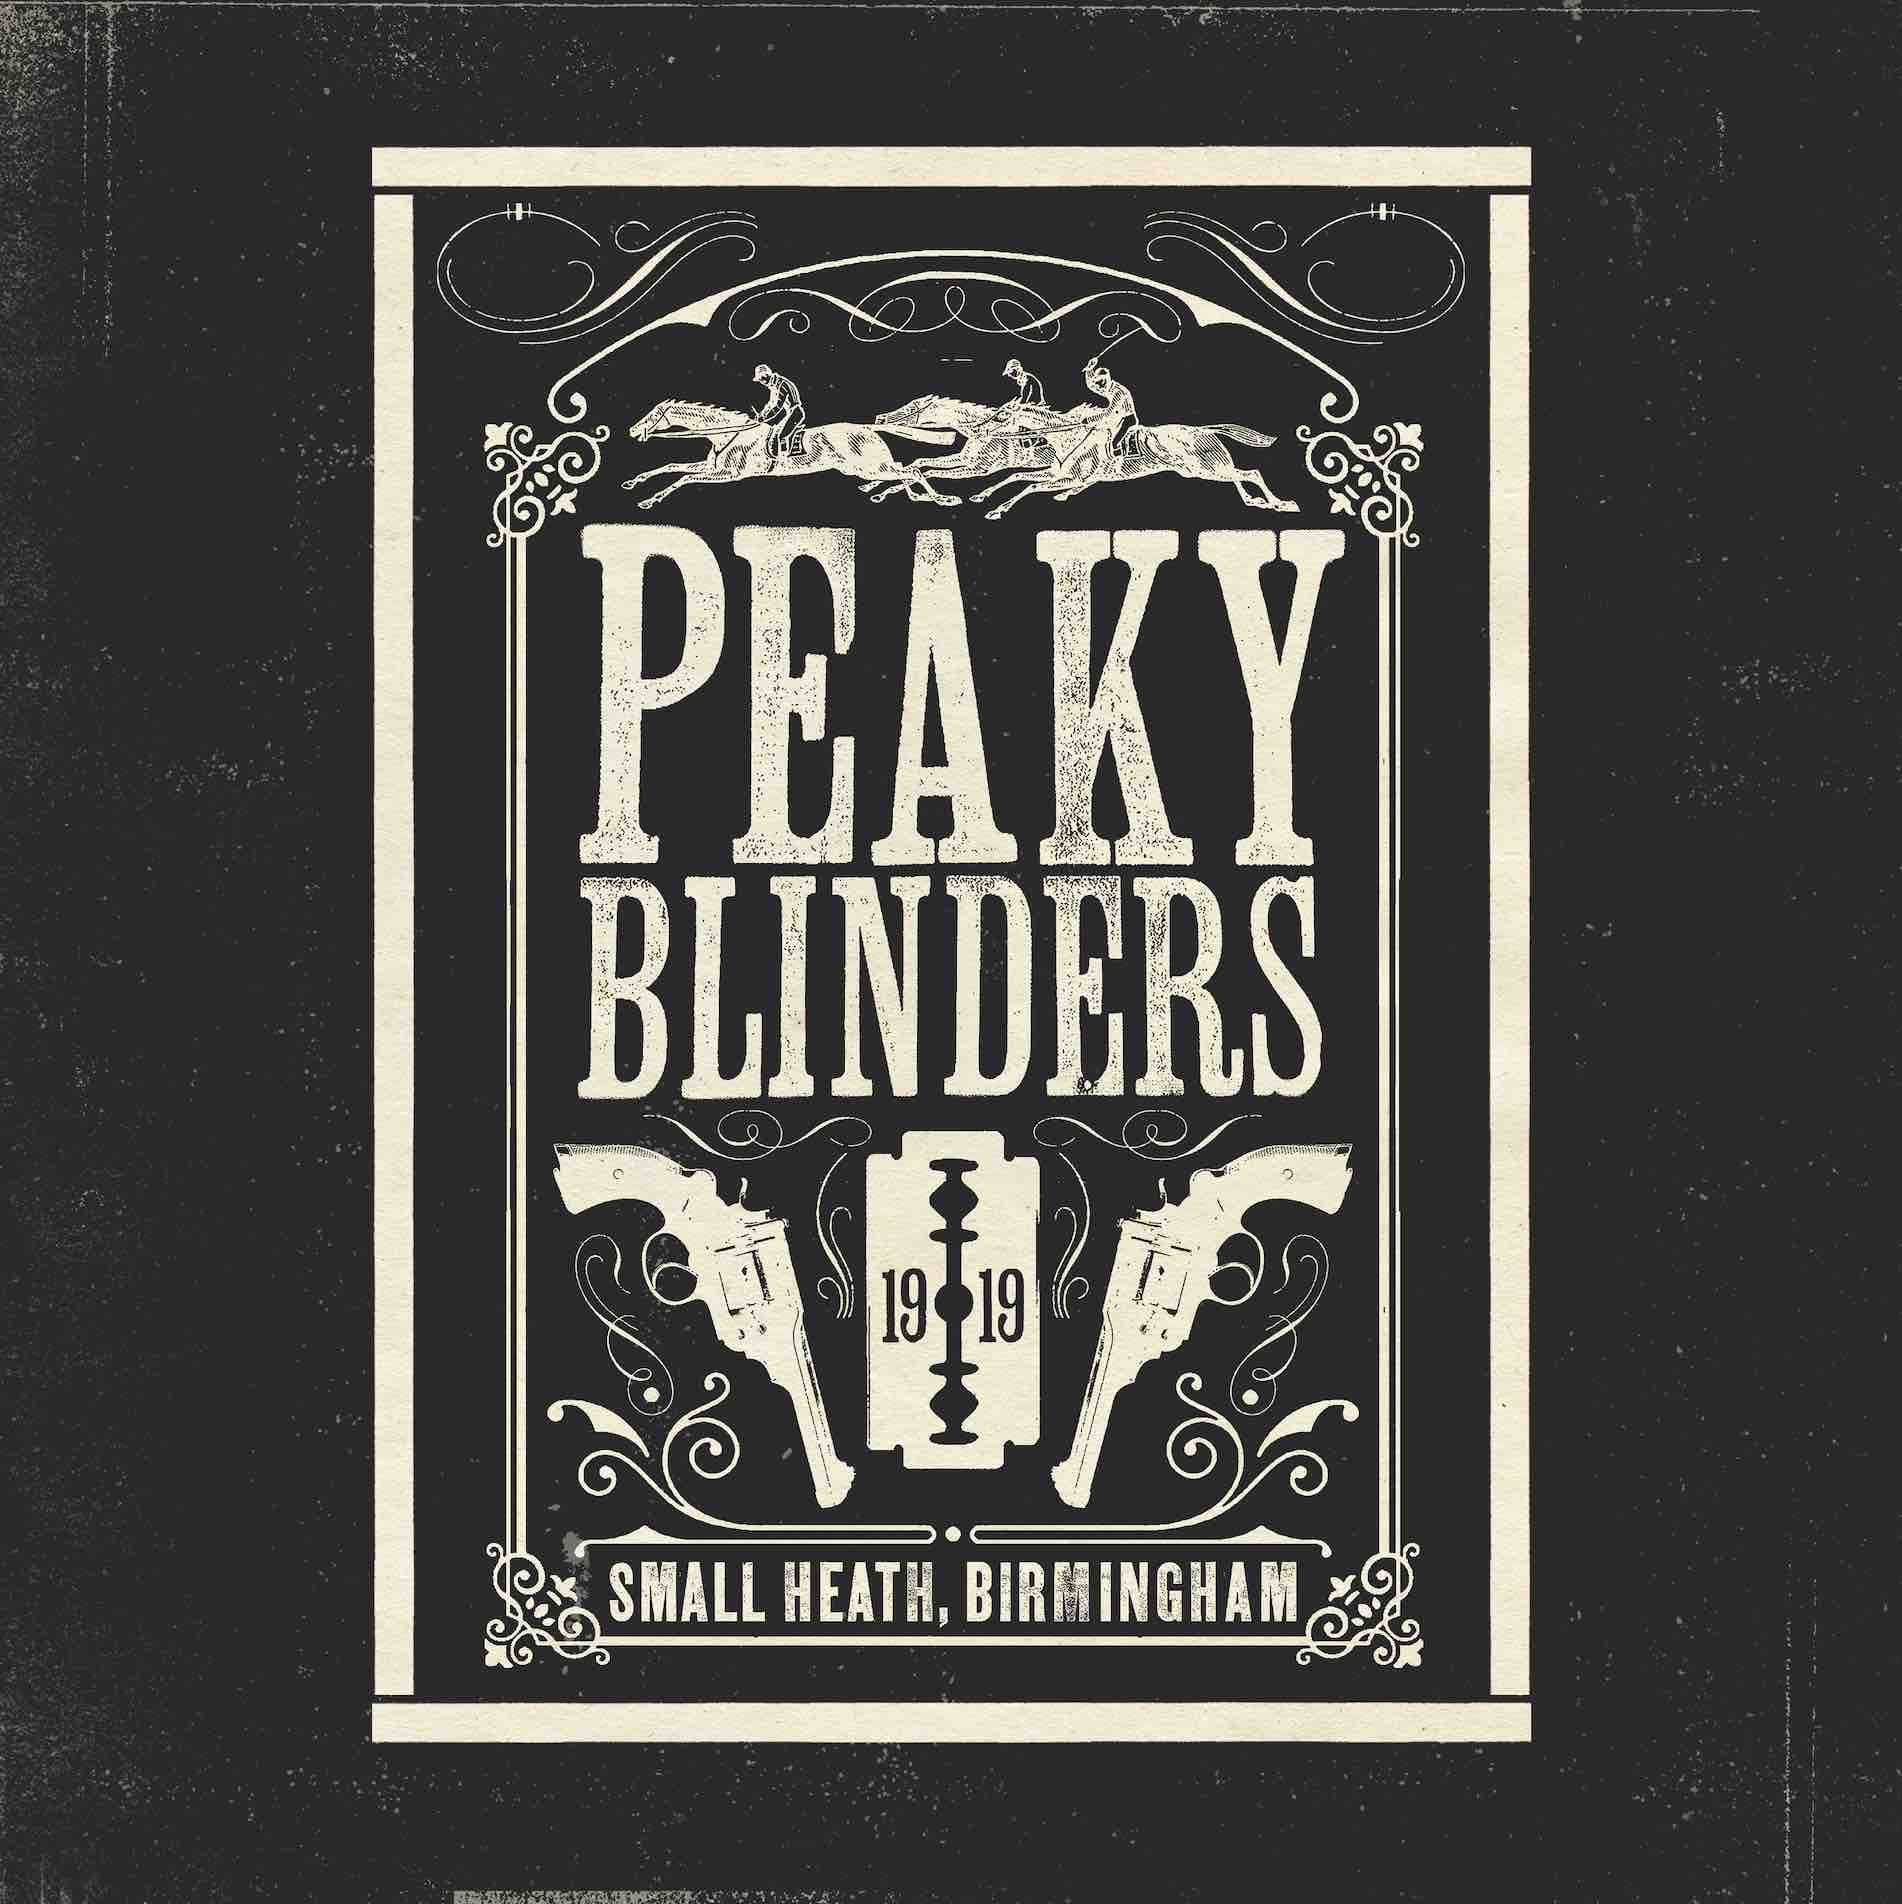 'PEAKY BLINDERS'  FIRST EVER SOUNDTRACK TO BE RELEASED